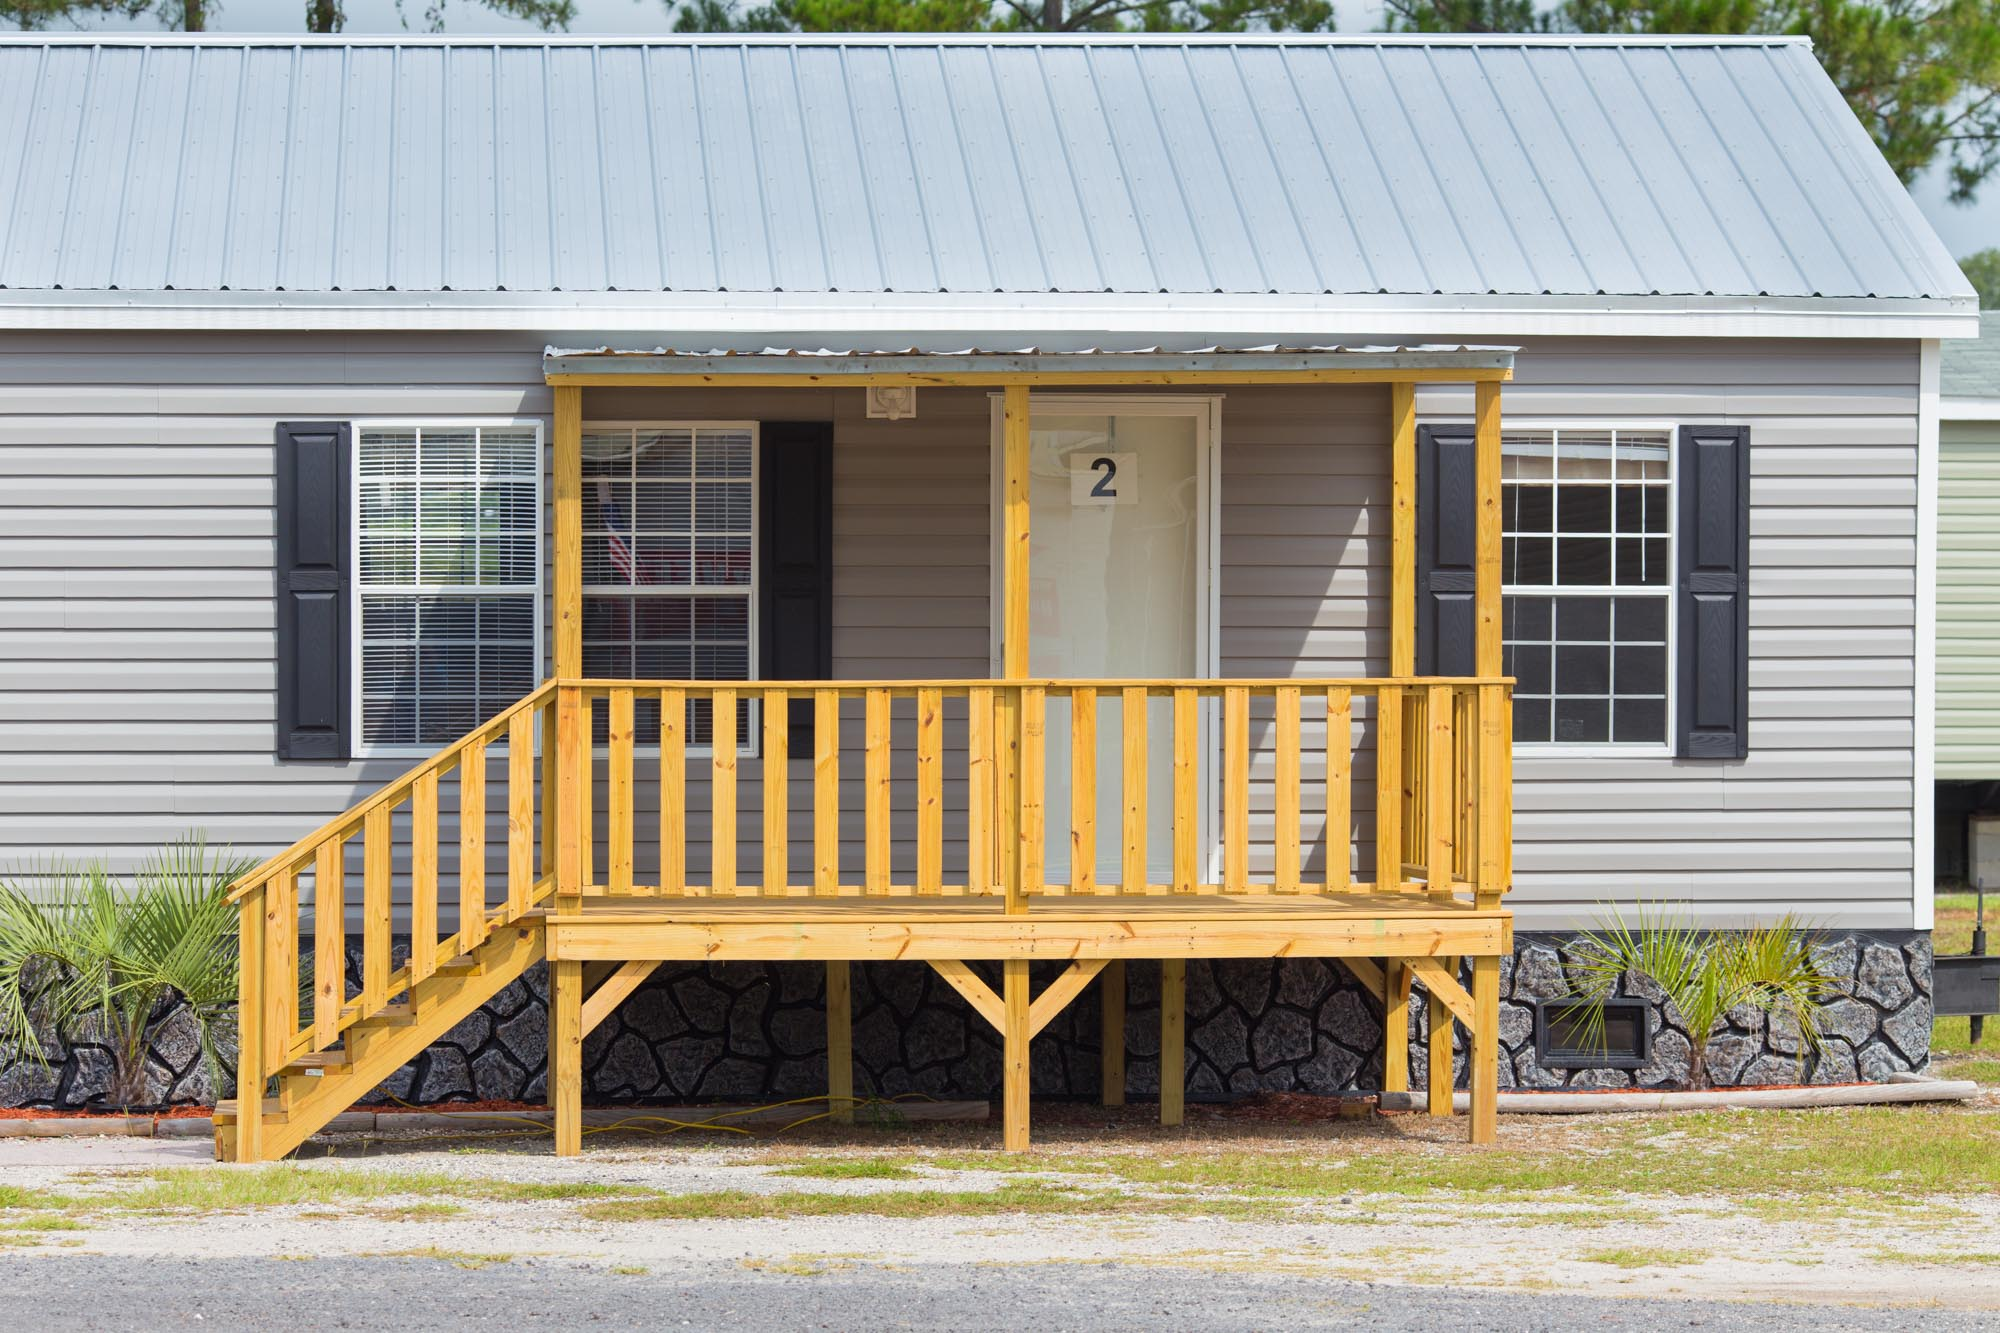 Mobile Homes Chiefland Fl | Used Double Wide Mobile Homes for Sale in Georgia | Wayne Frier Mobile Homes